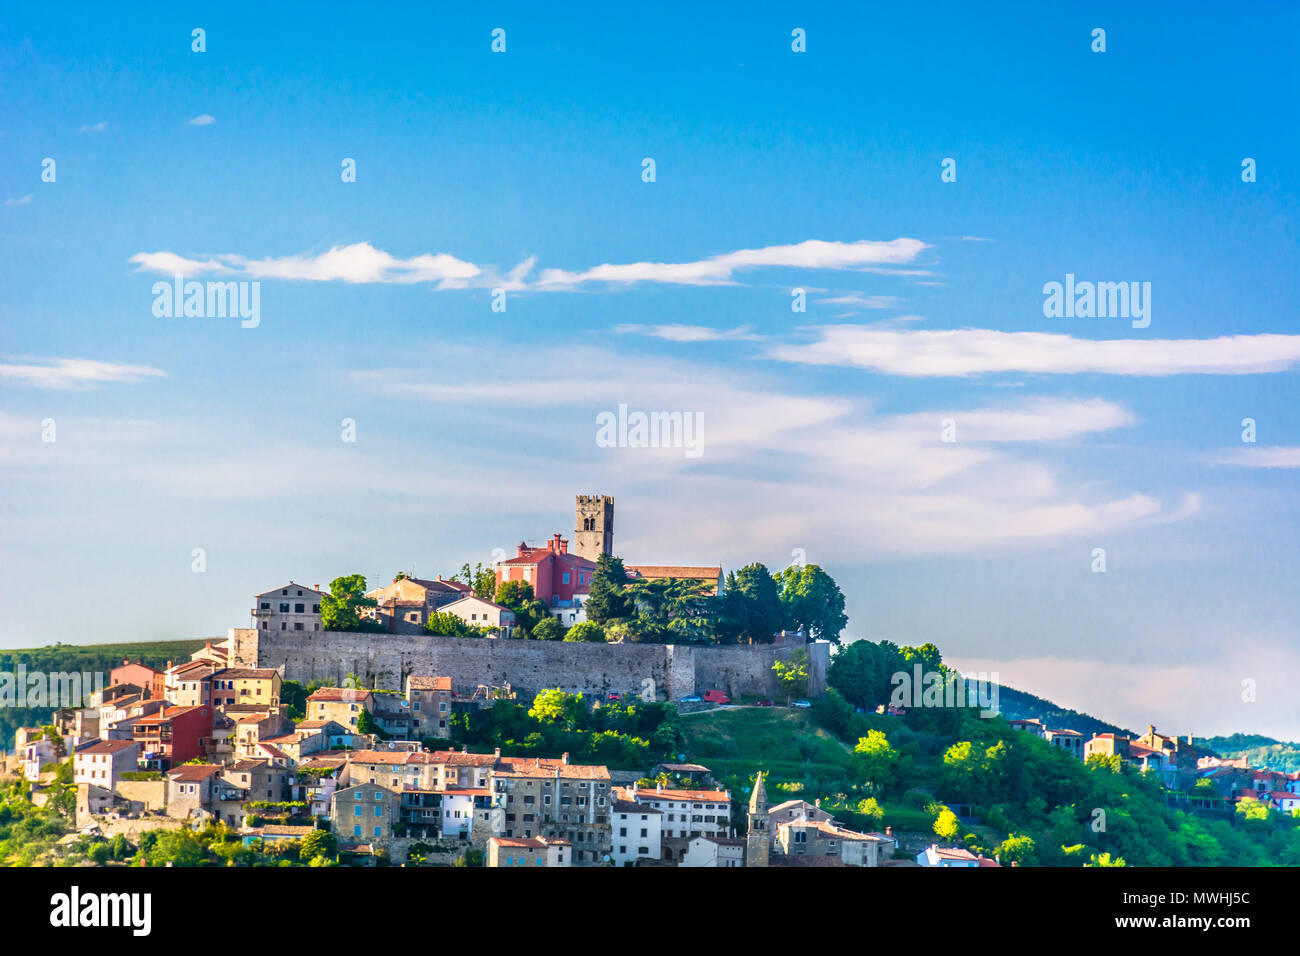 Scenic view at medieval town Motovun on marble hill, Istria Croatia. Stock Photo